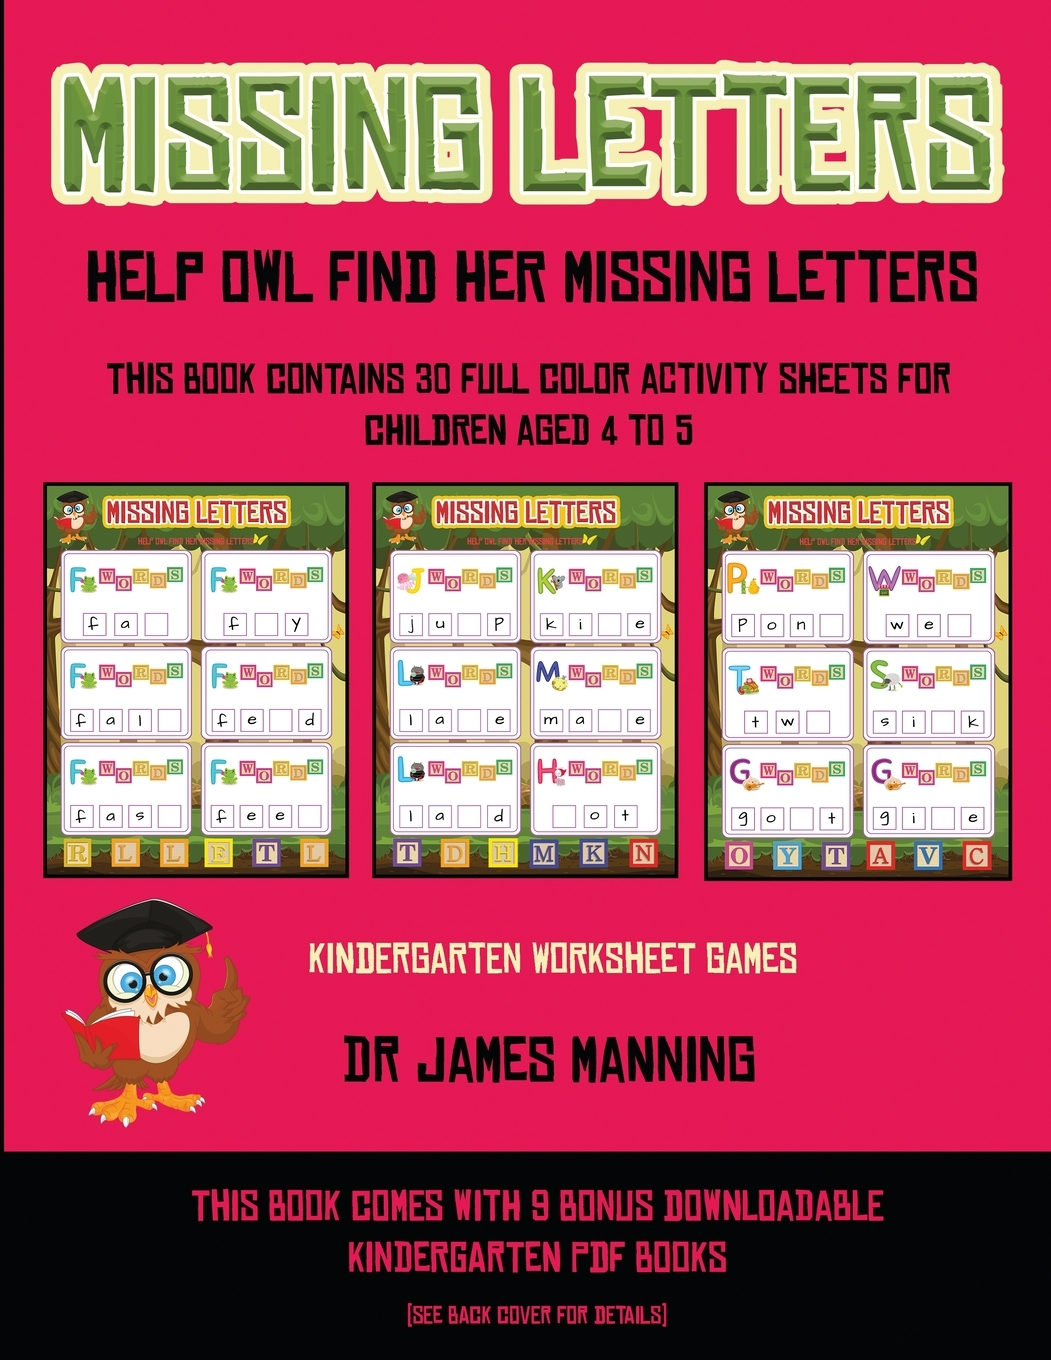 Kindergarten Worksheet Games Kindergarten Worksheet Games